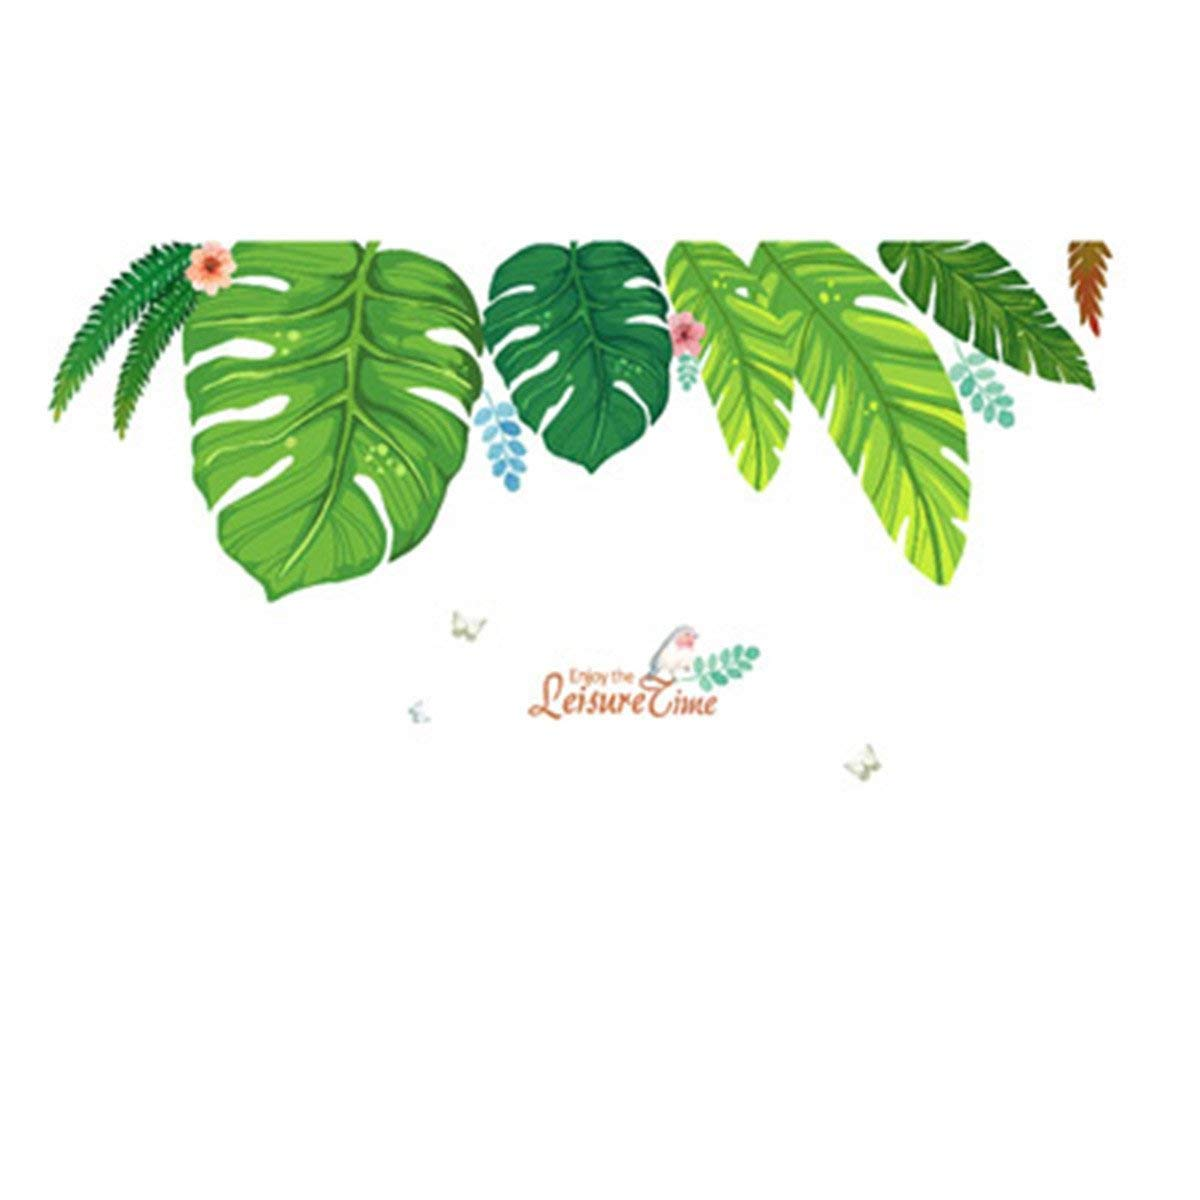 YIHOPAINTI DIY Removable Wall Decal Stickers Love Palm Tree Wall Stickers for Kids Room Living Room Office Bathroom Kitchen Bedroom Home Decor (green leaves 78x35)